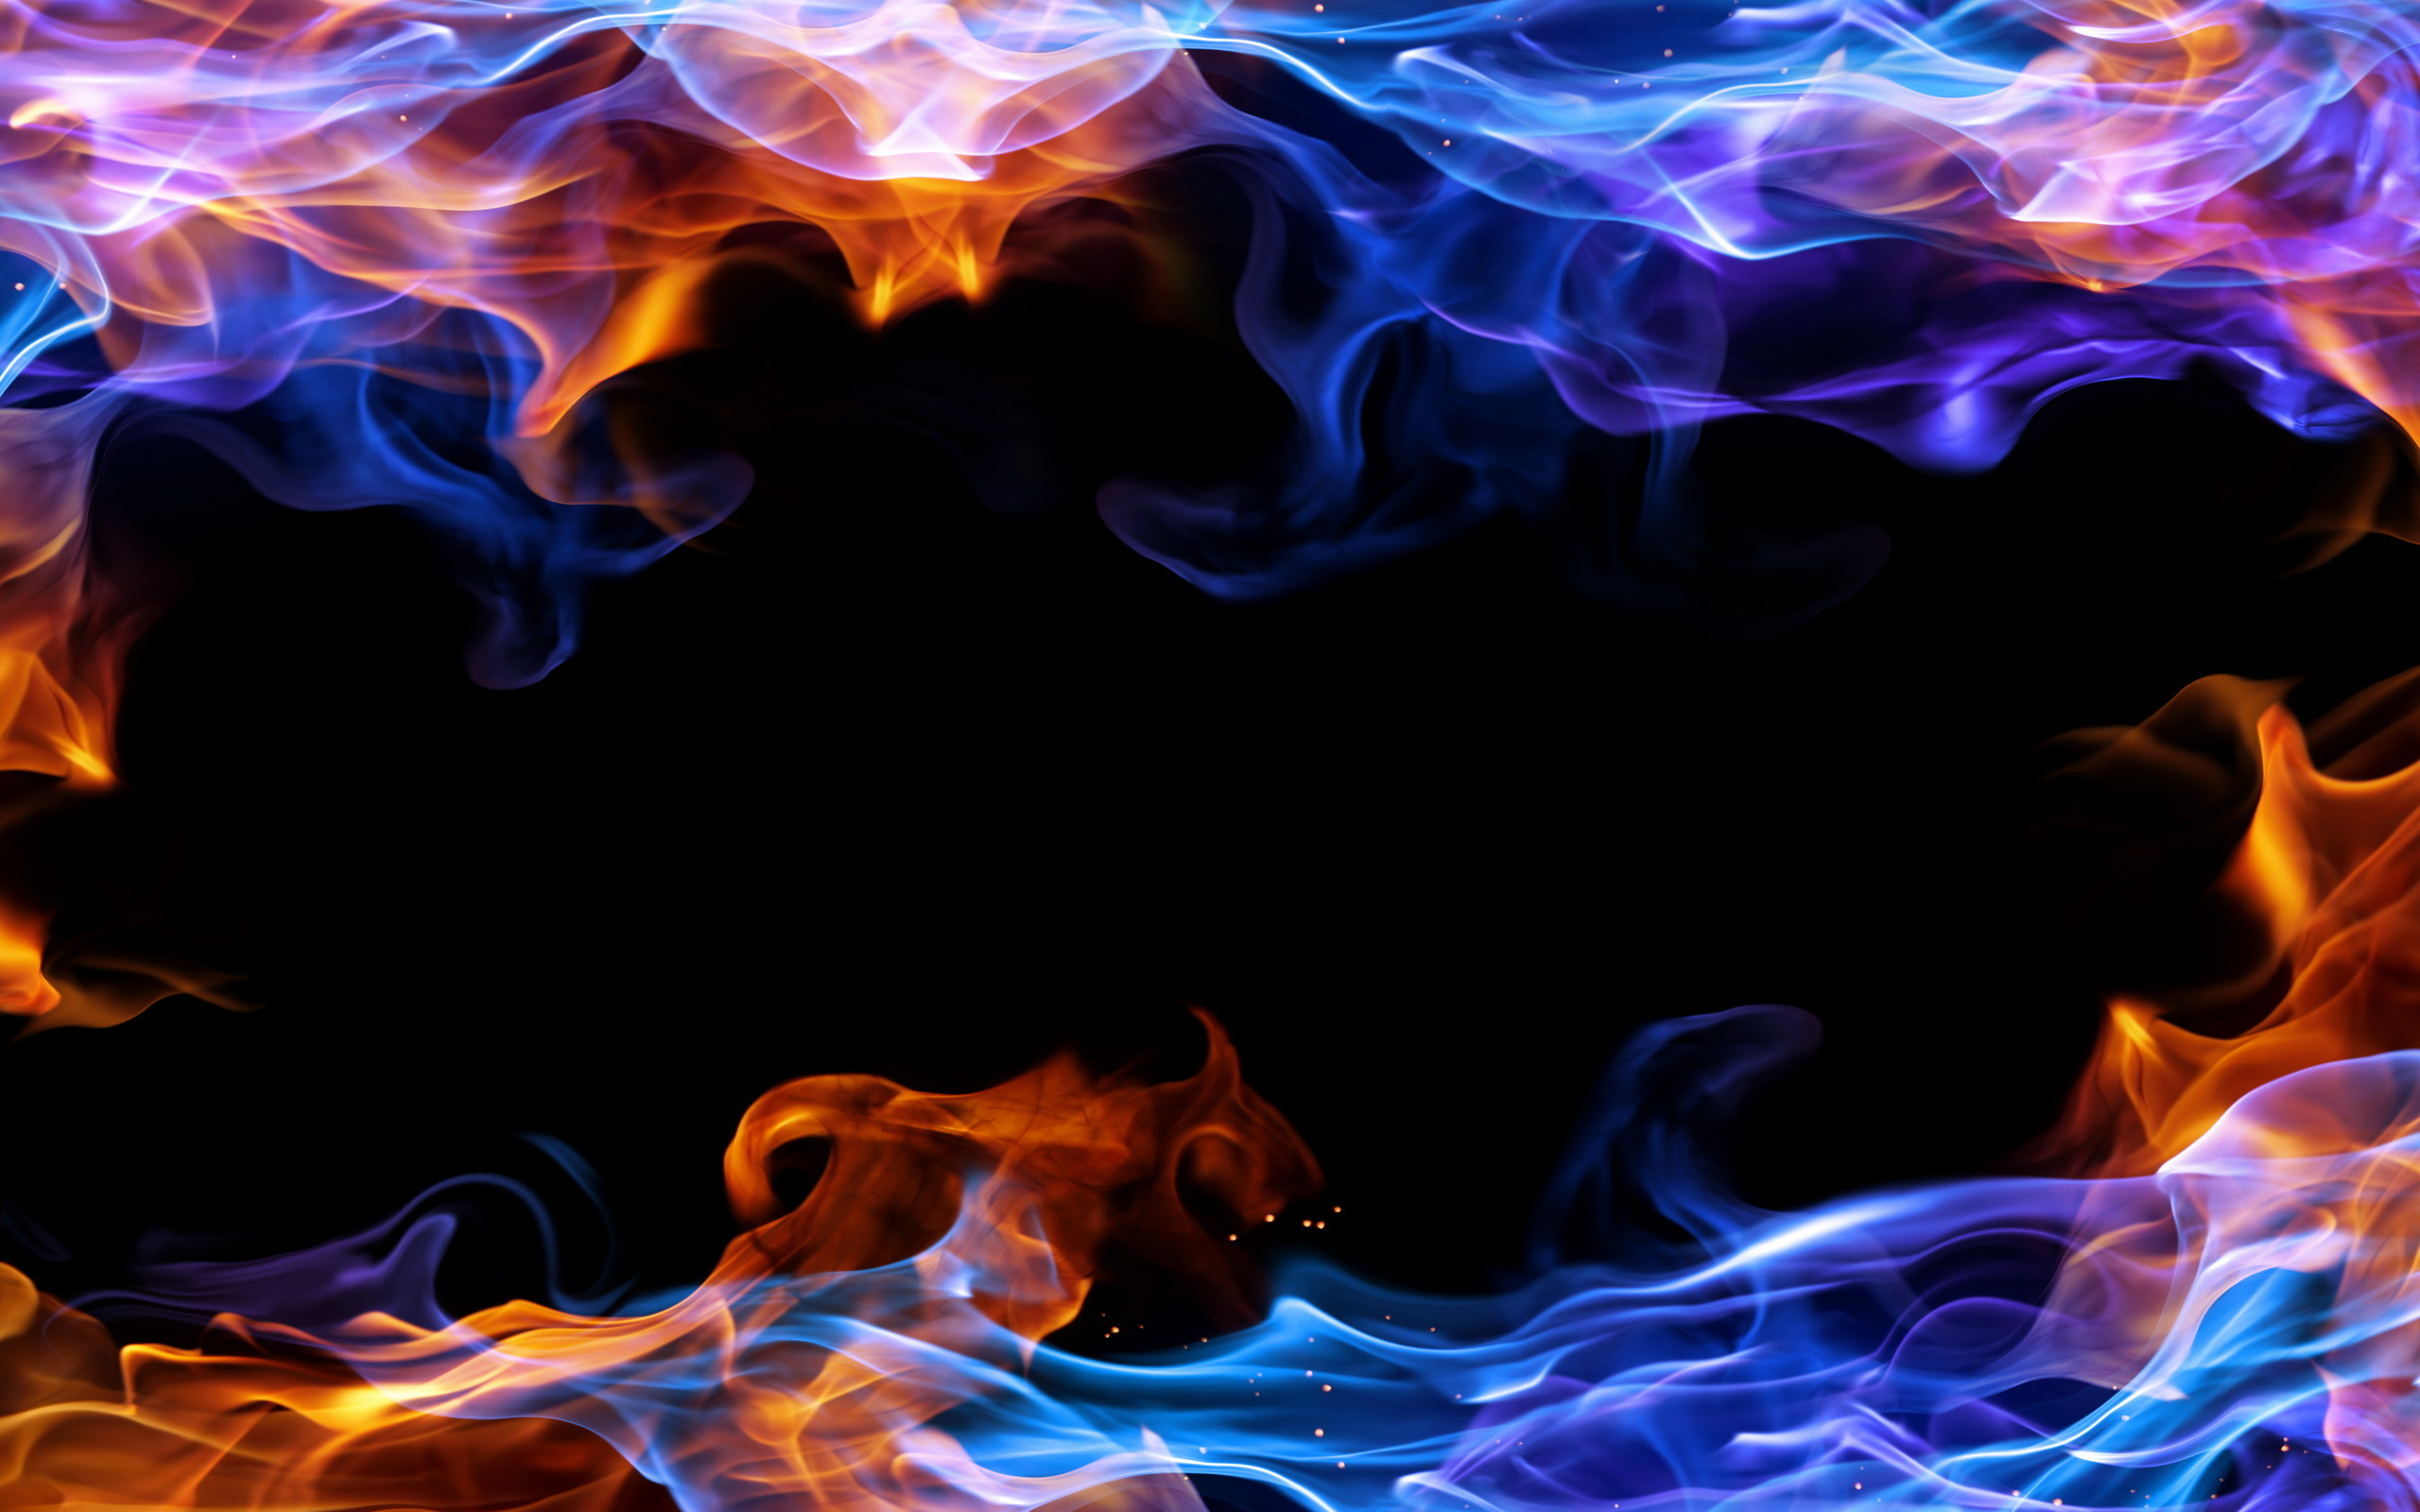 2560x1600 High Resolution Images Collection Red And Blue Fire Wallpaper By Edmund Pinkerton